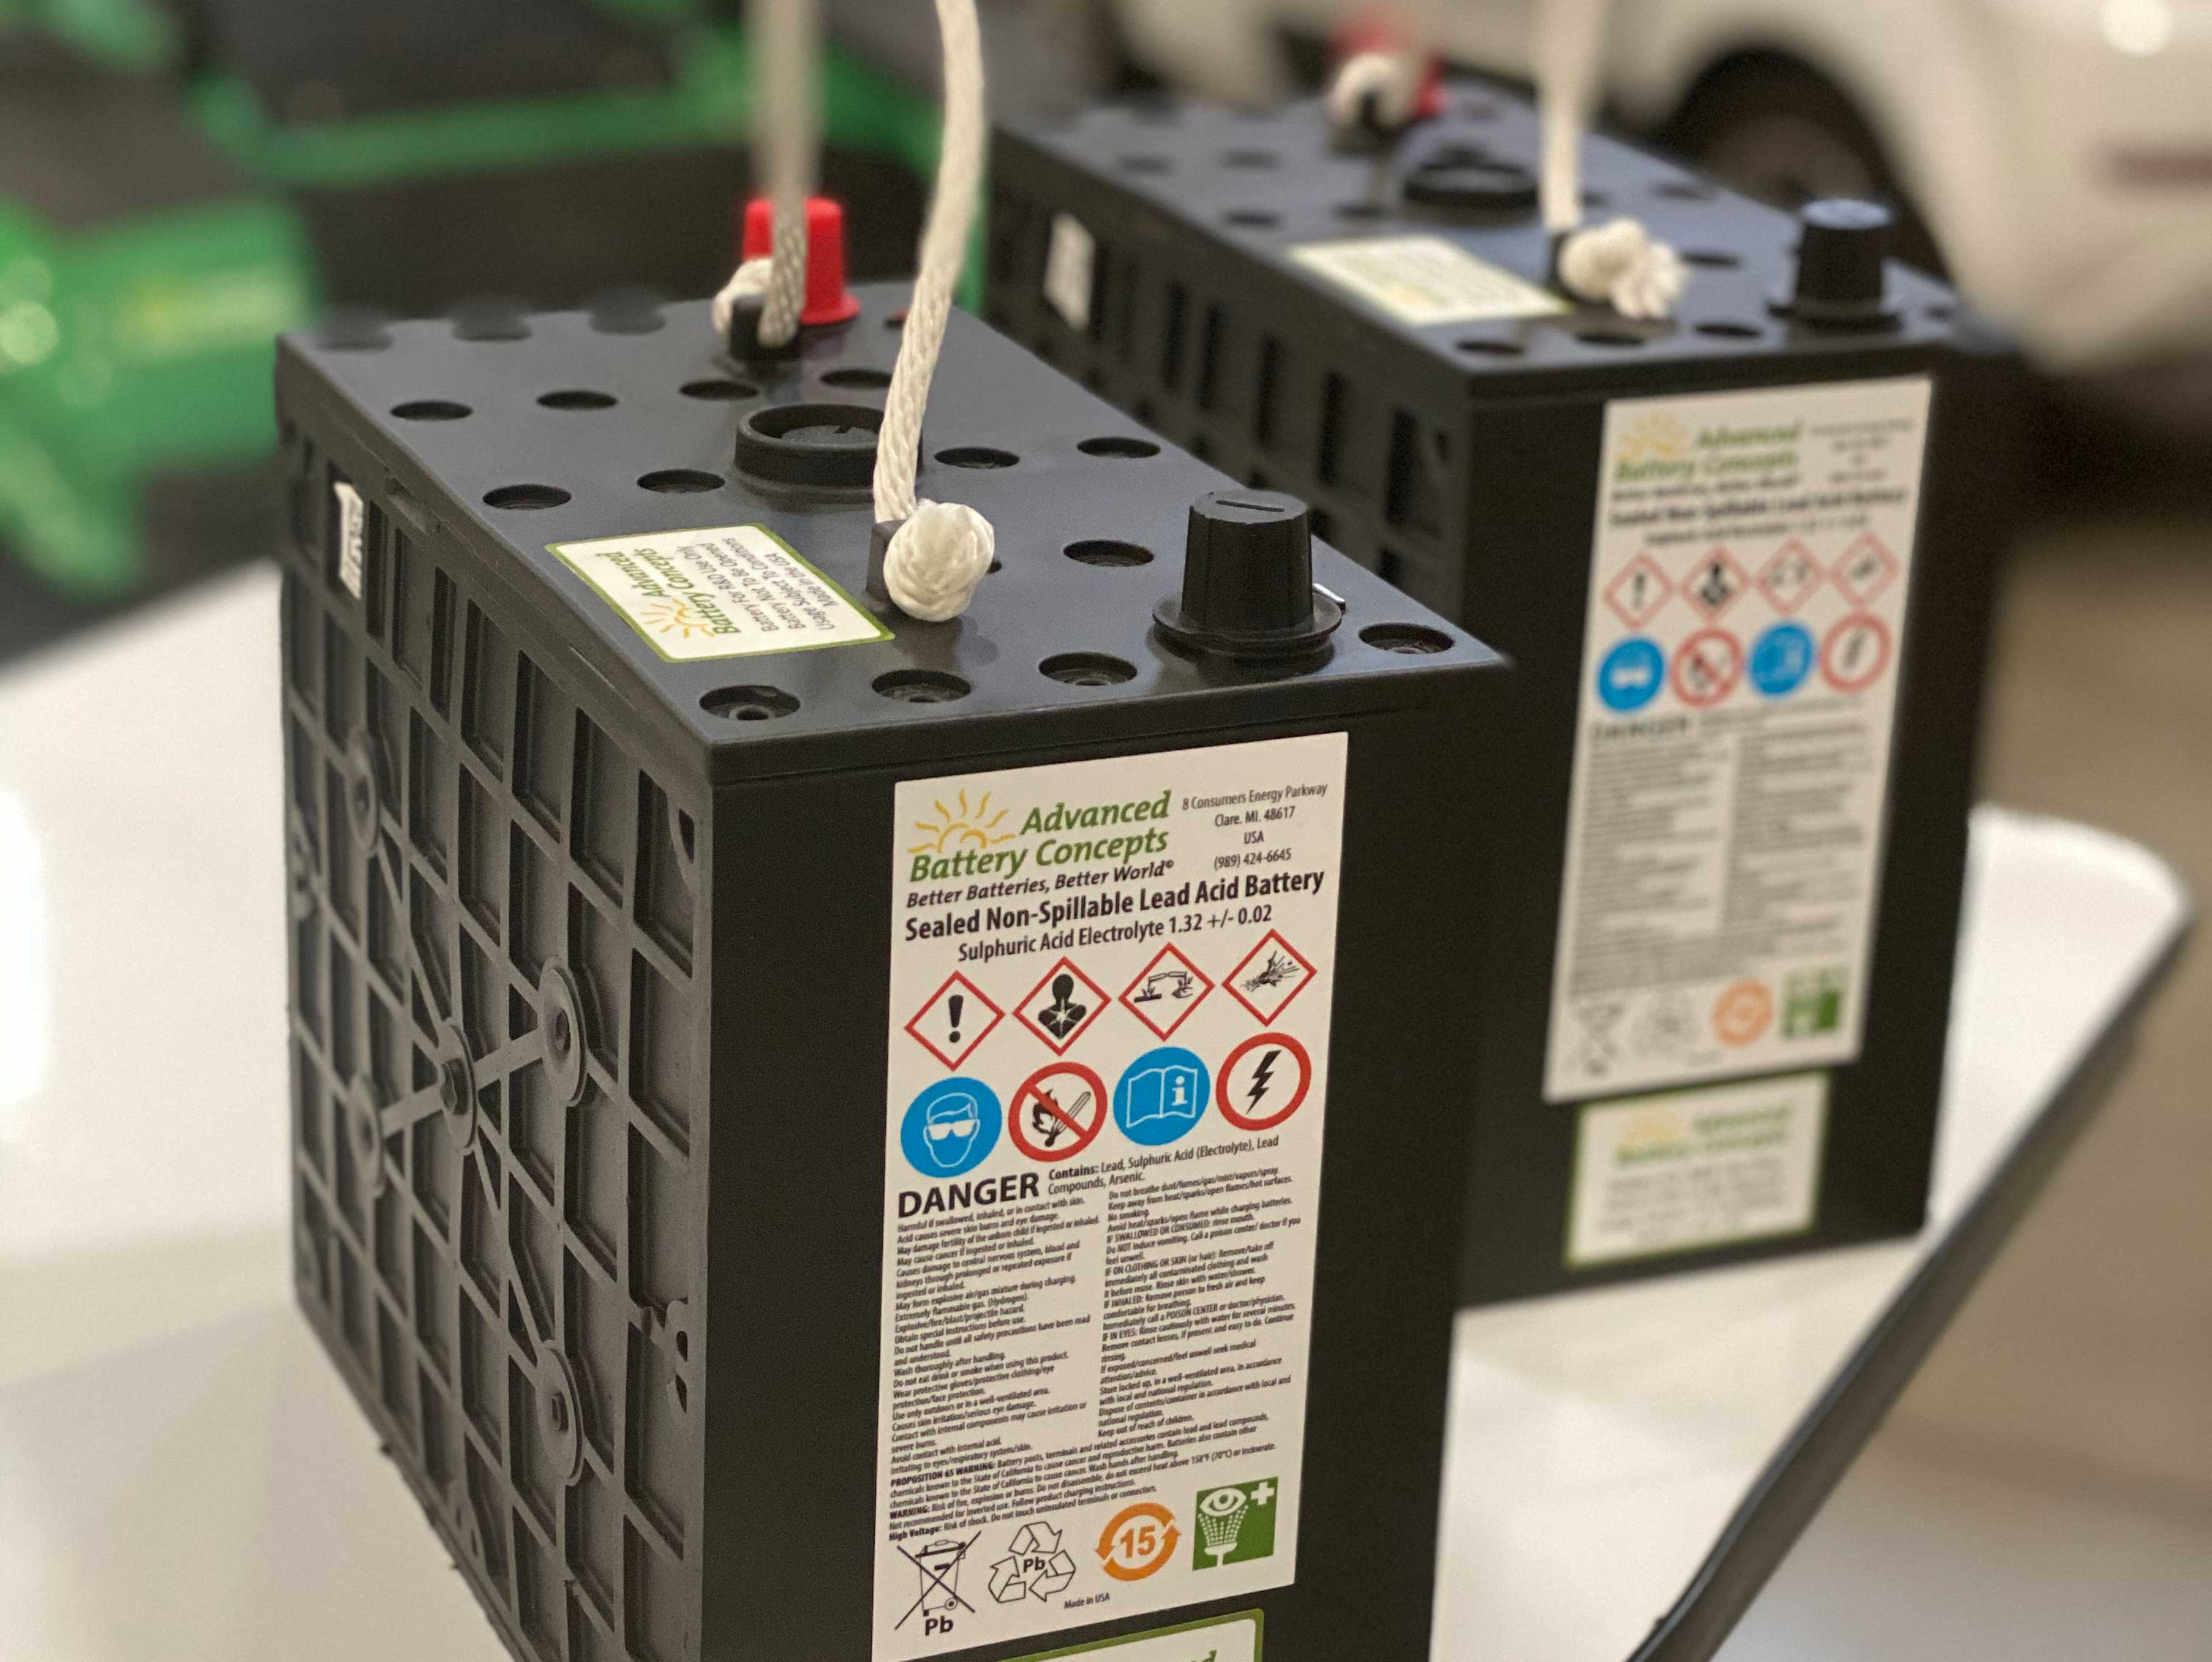 Up to global standards research into next generation automotive battery technology